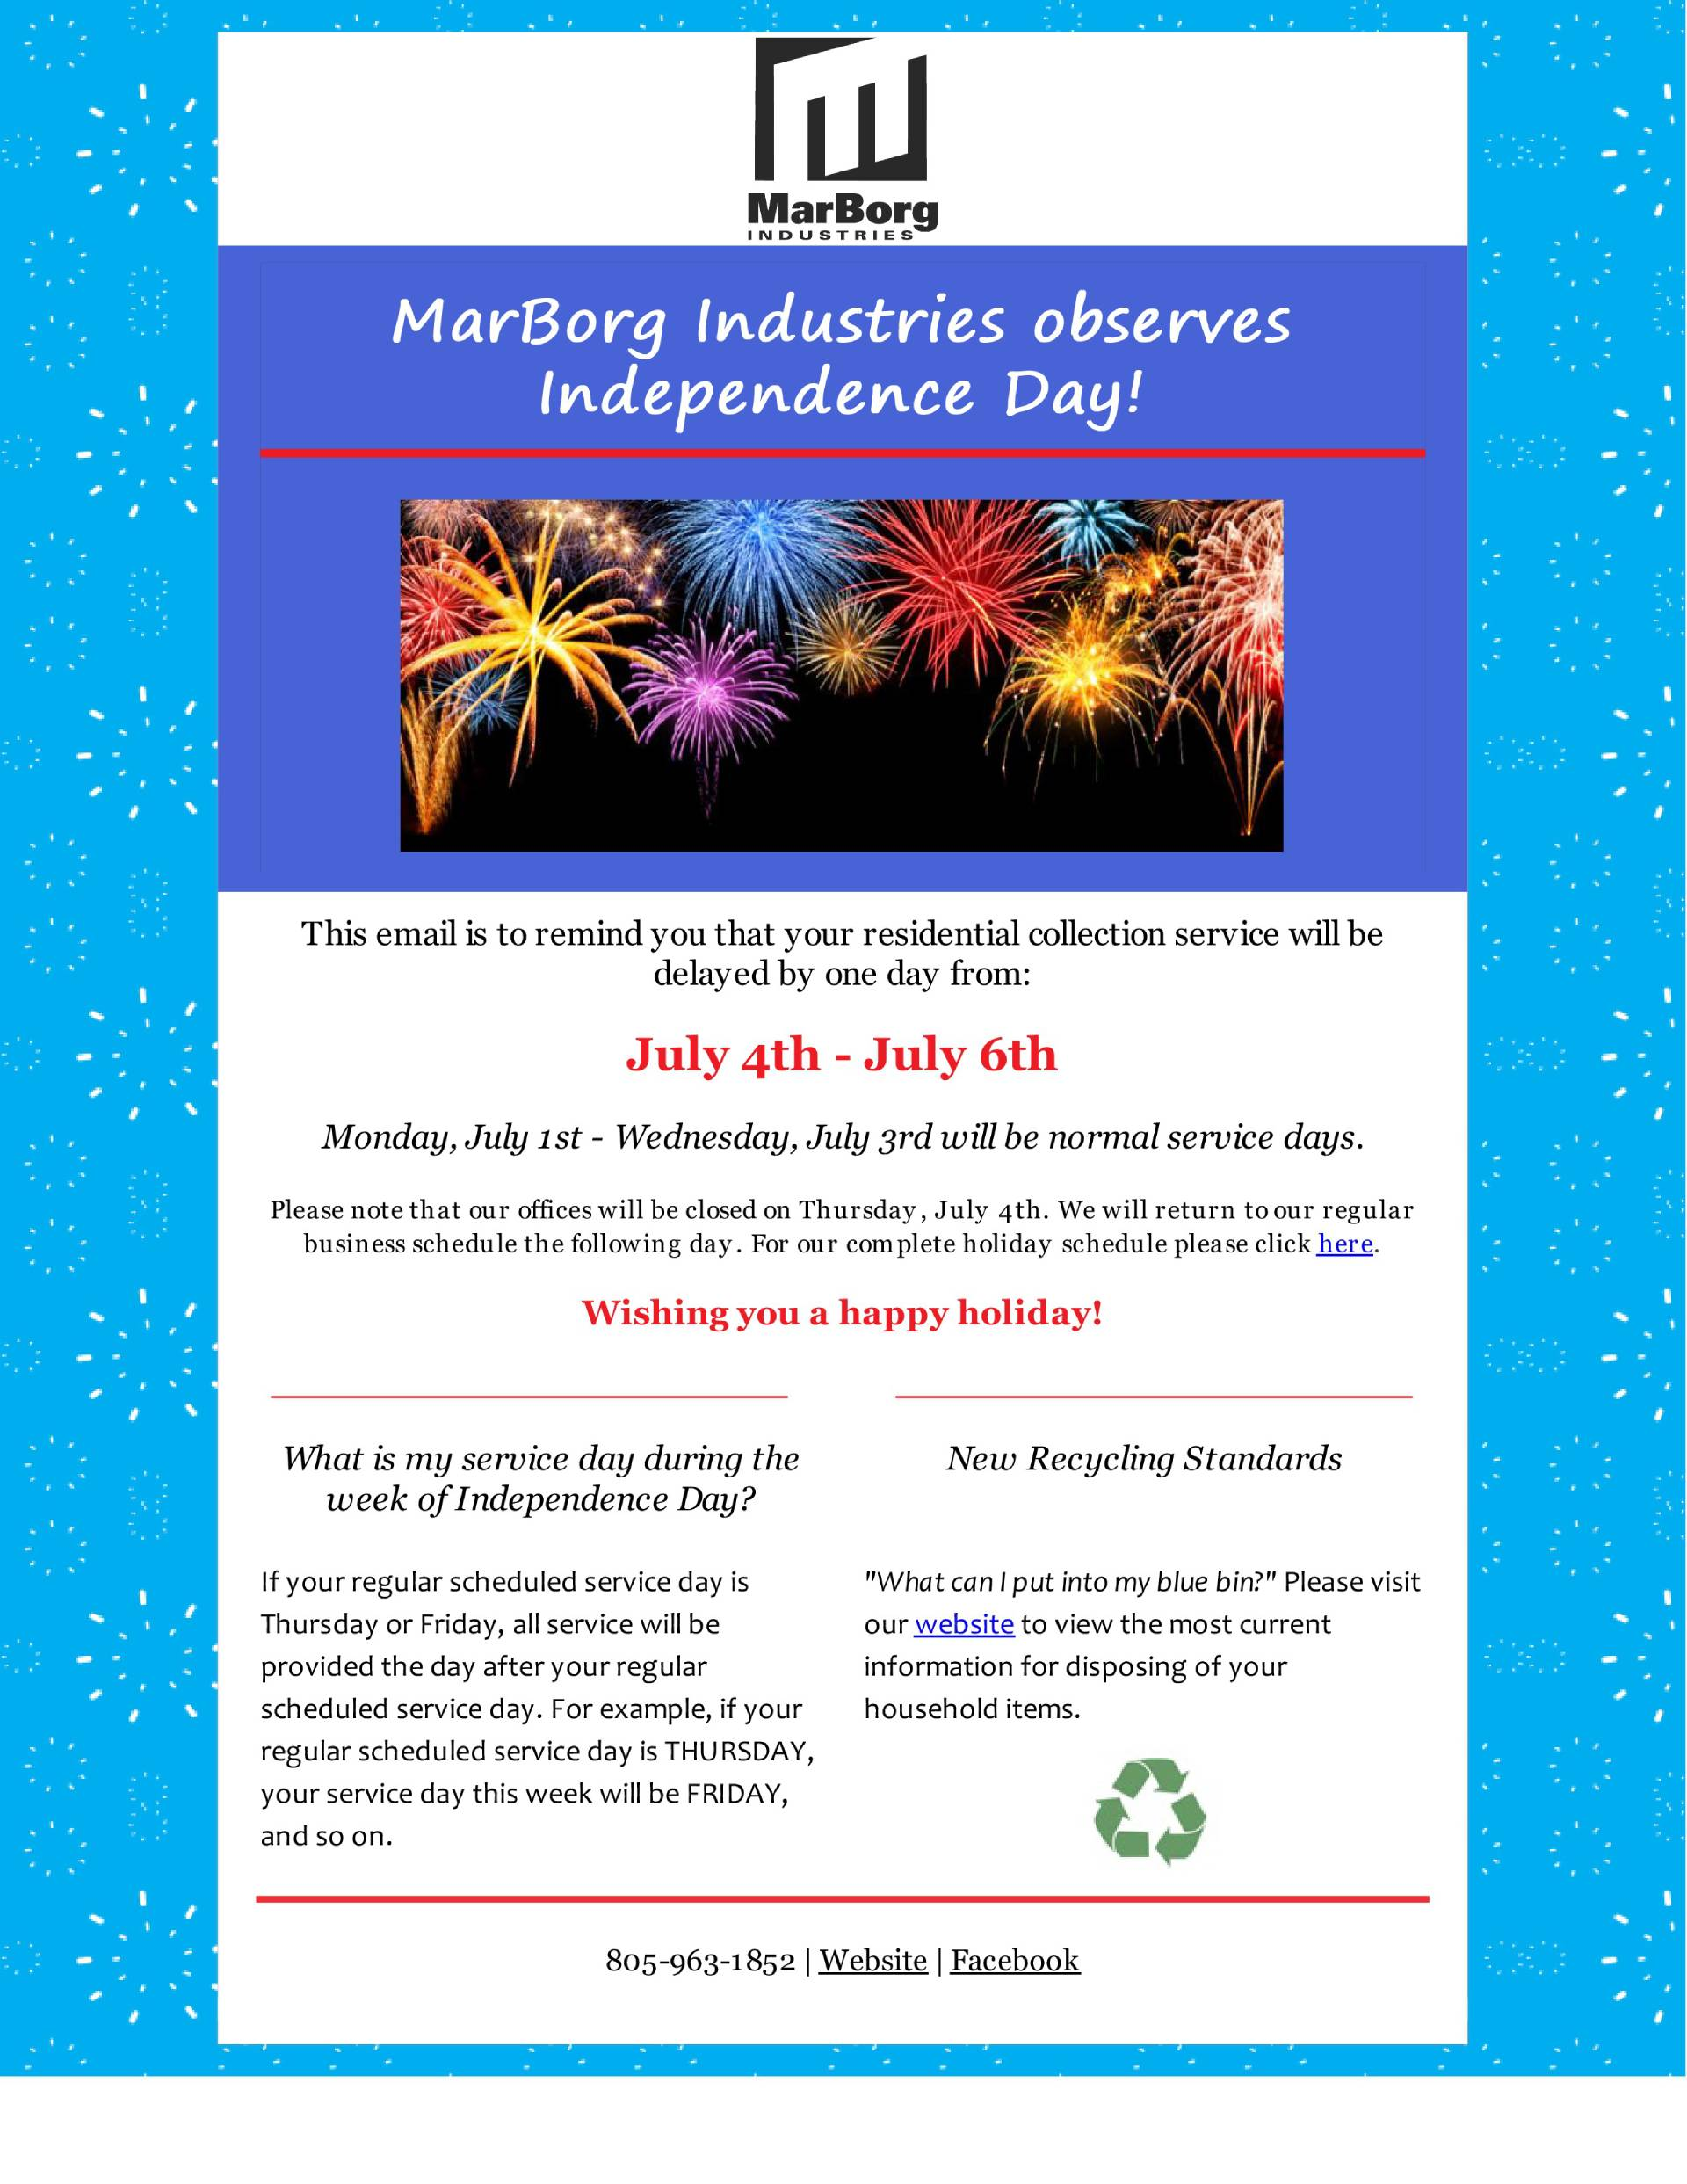 Marborg Industries Observes Independence Day!